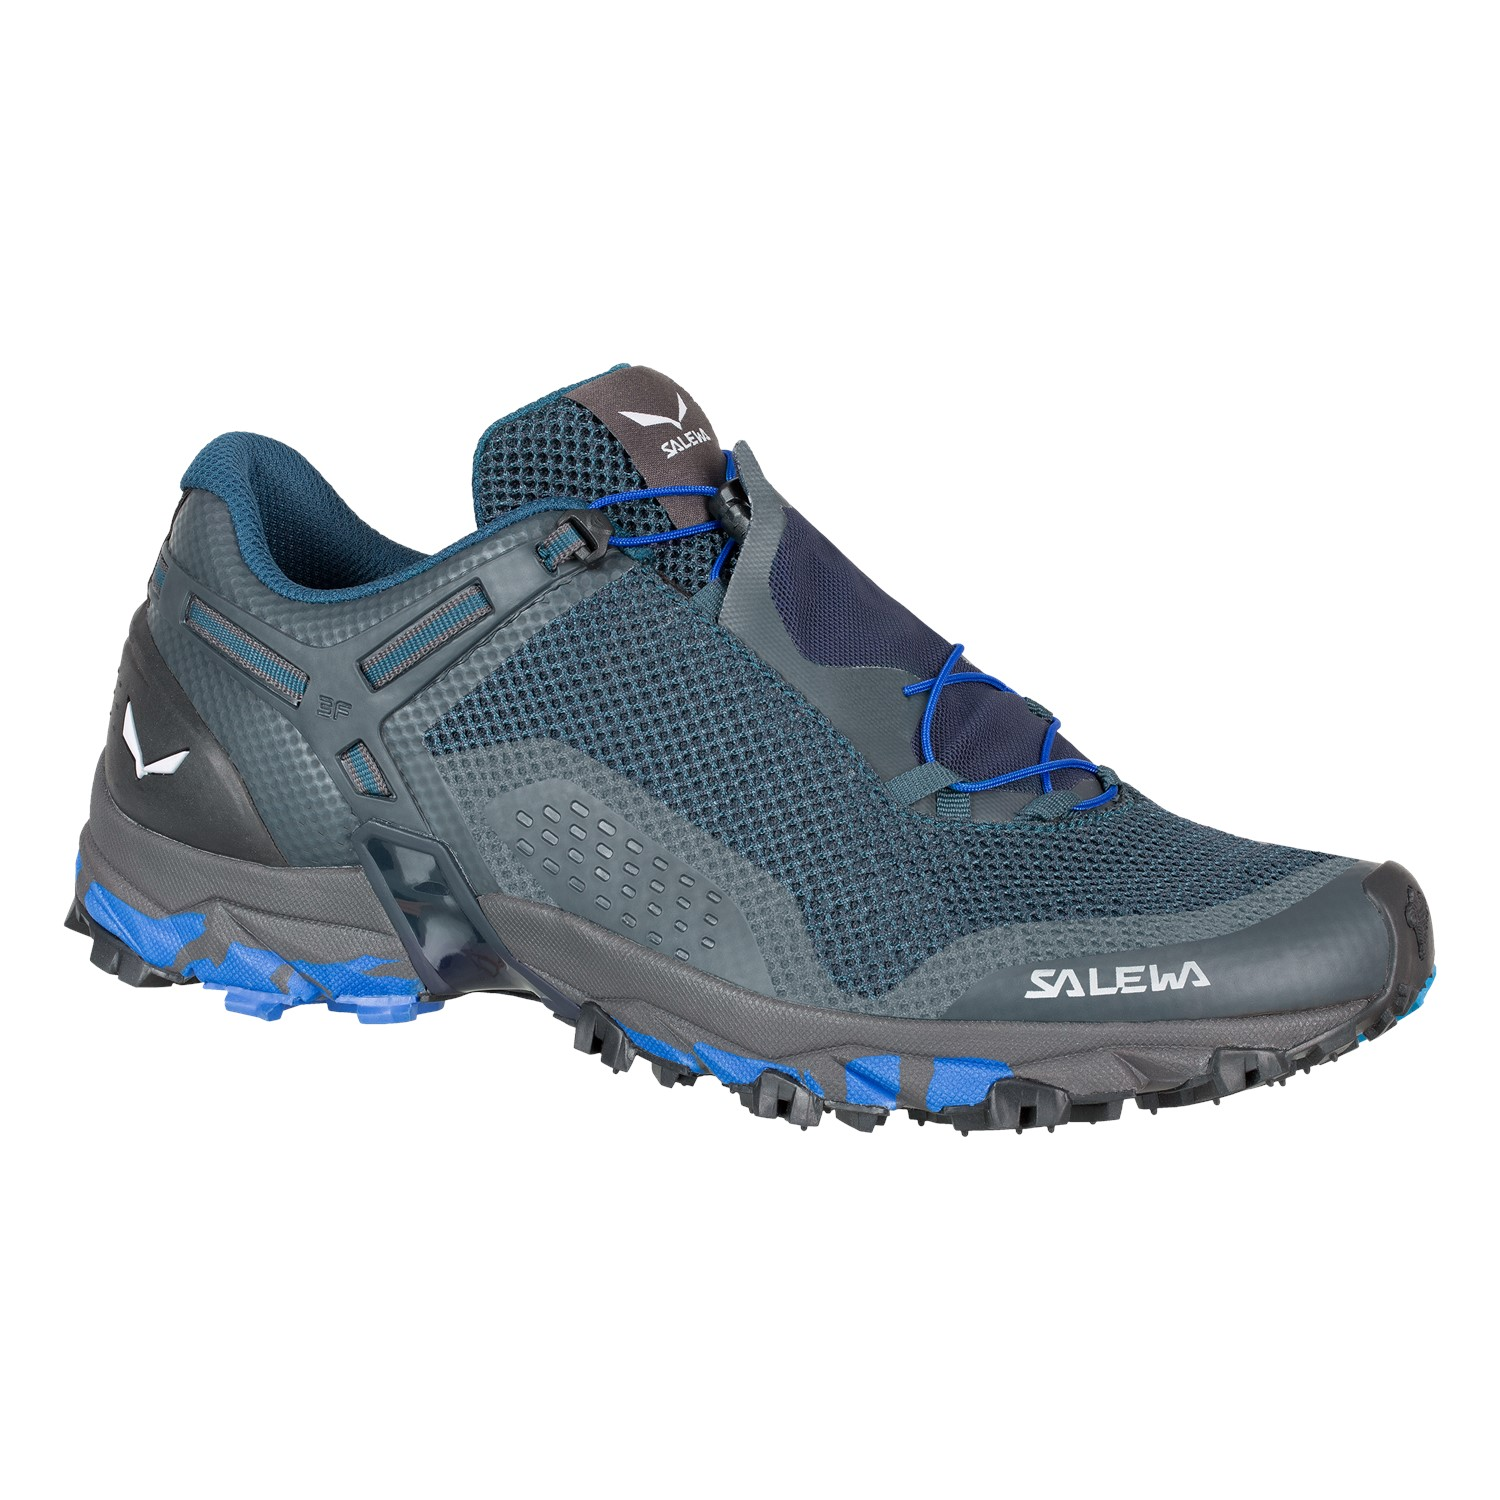 Salewa MS ULTRA TRAIN 2-Dark Denim/Royal Blue-11 - Gr. 11